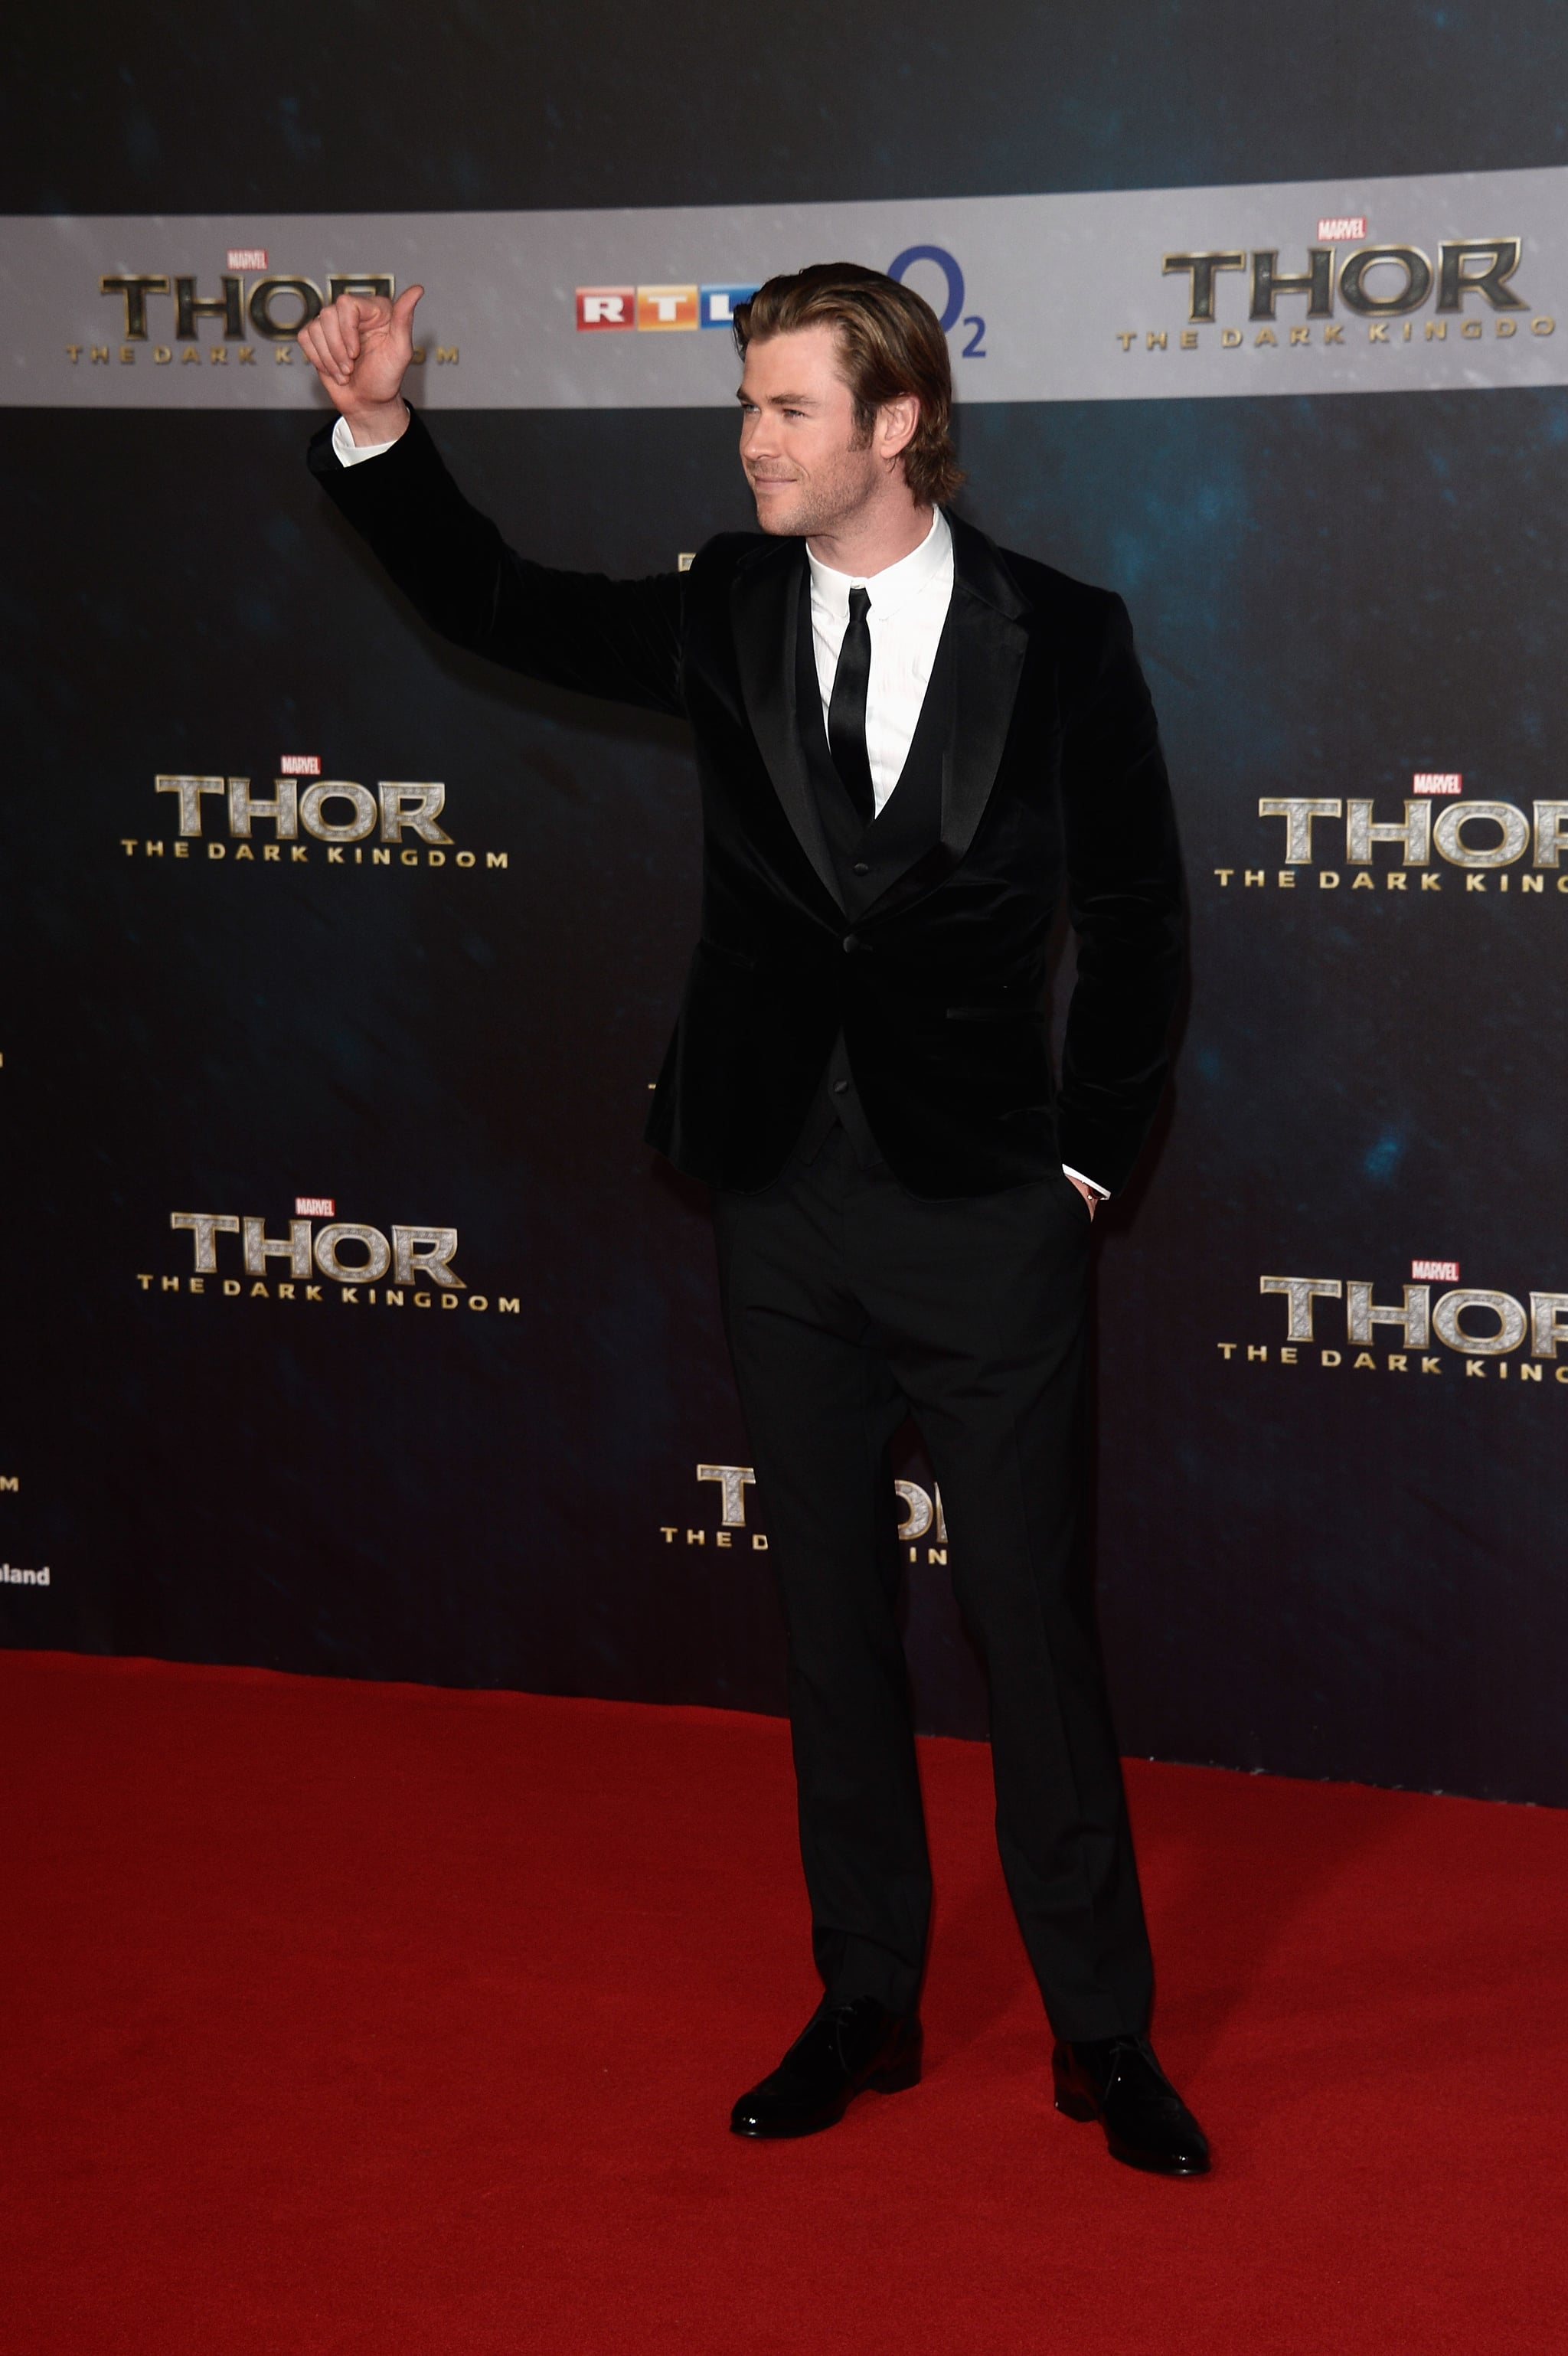 Chris Hemsworth gave a wave at the premiere in Germany.